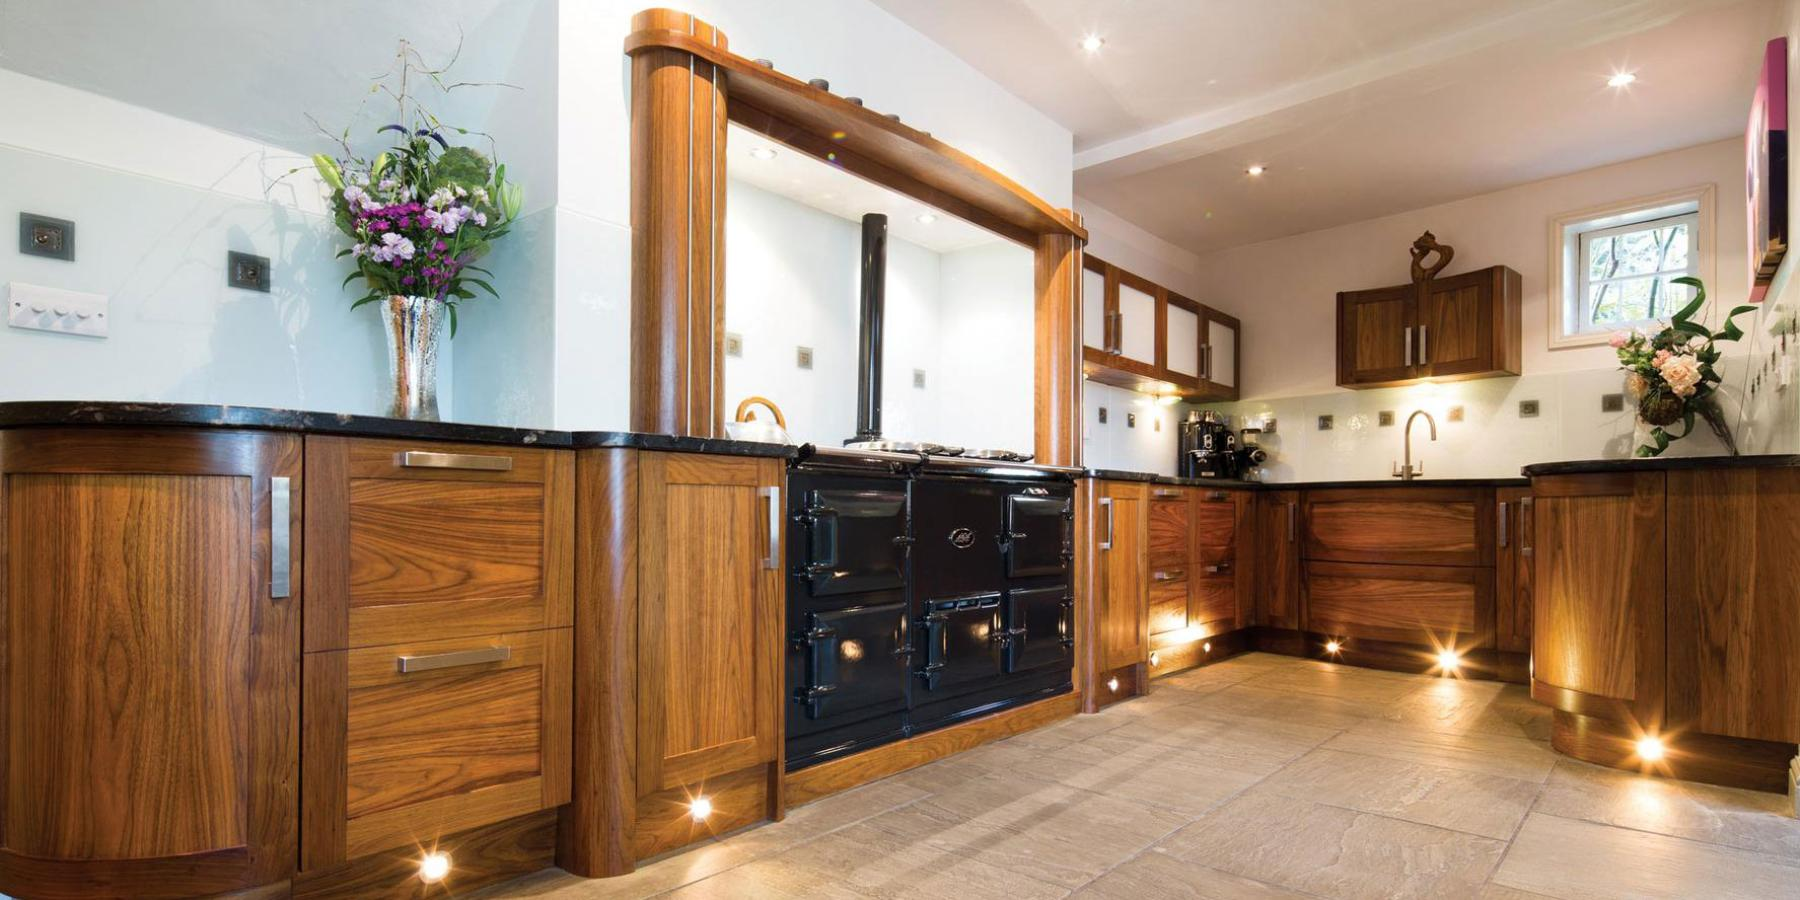 Bespoke Solid & Hardwood Kitchens